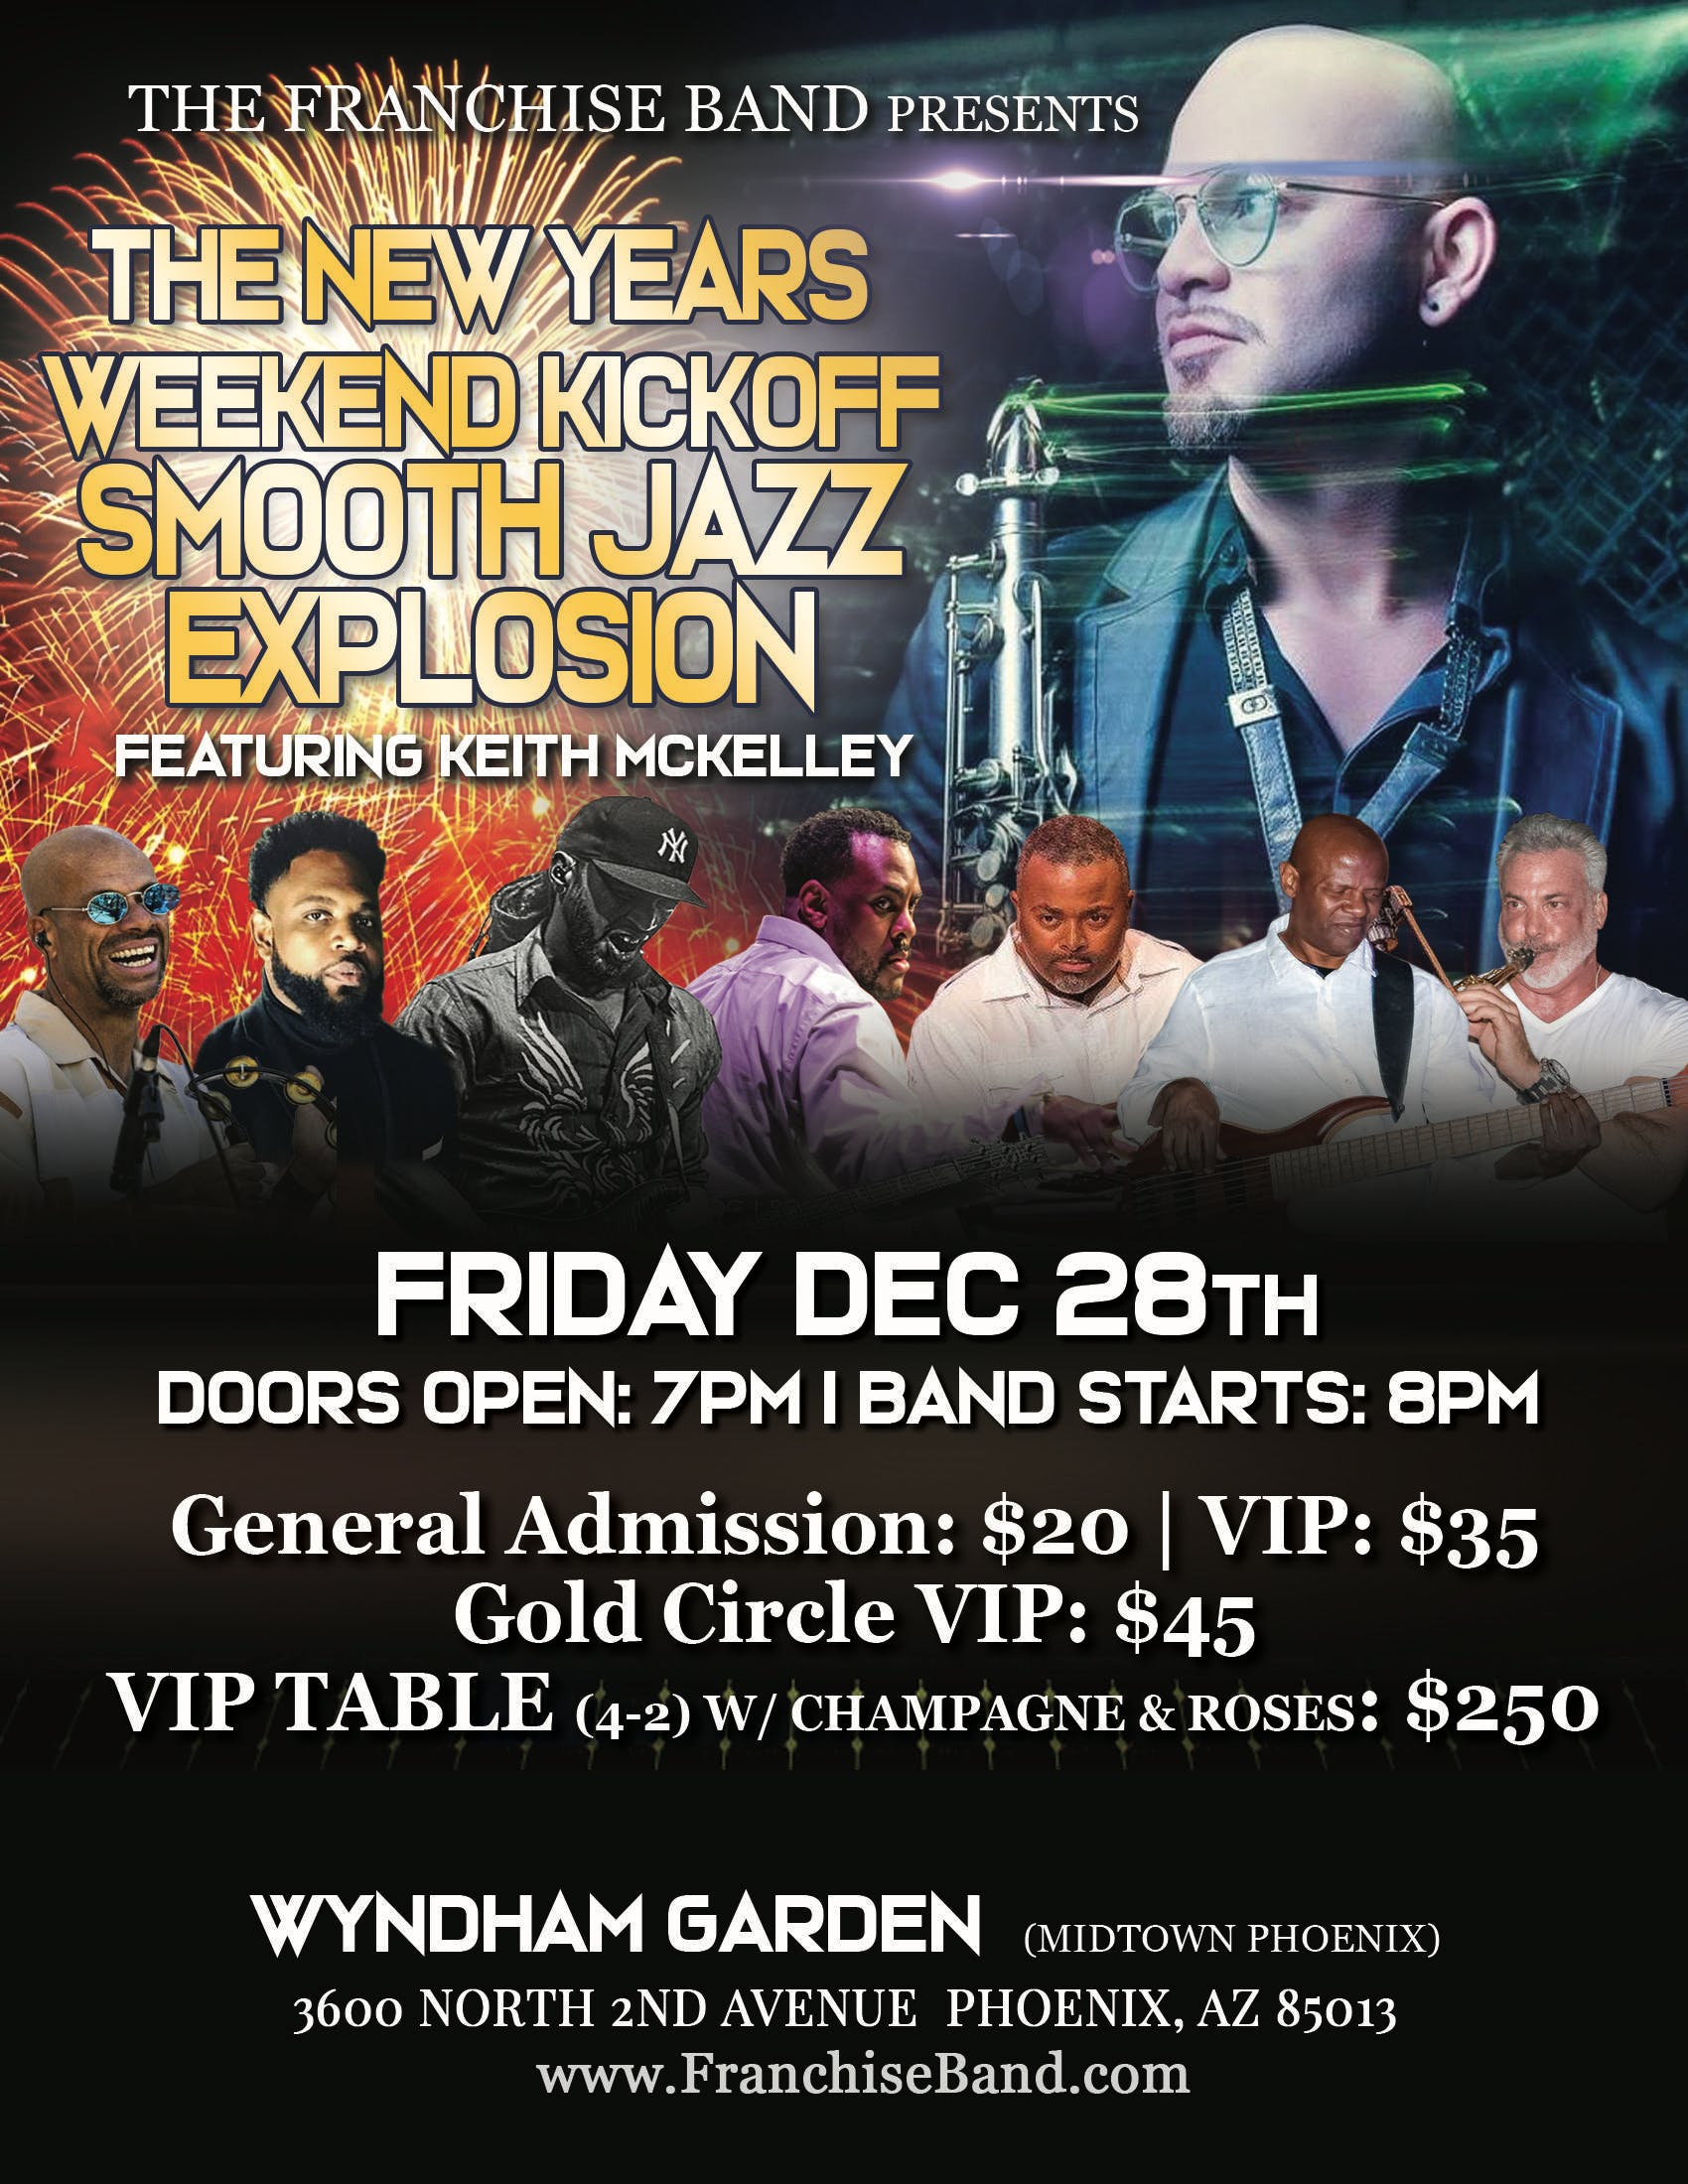 The Franchise Band's New Years Kickoff Featuring Keith Mckelley on Sax!